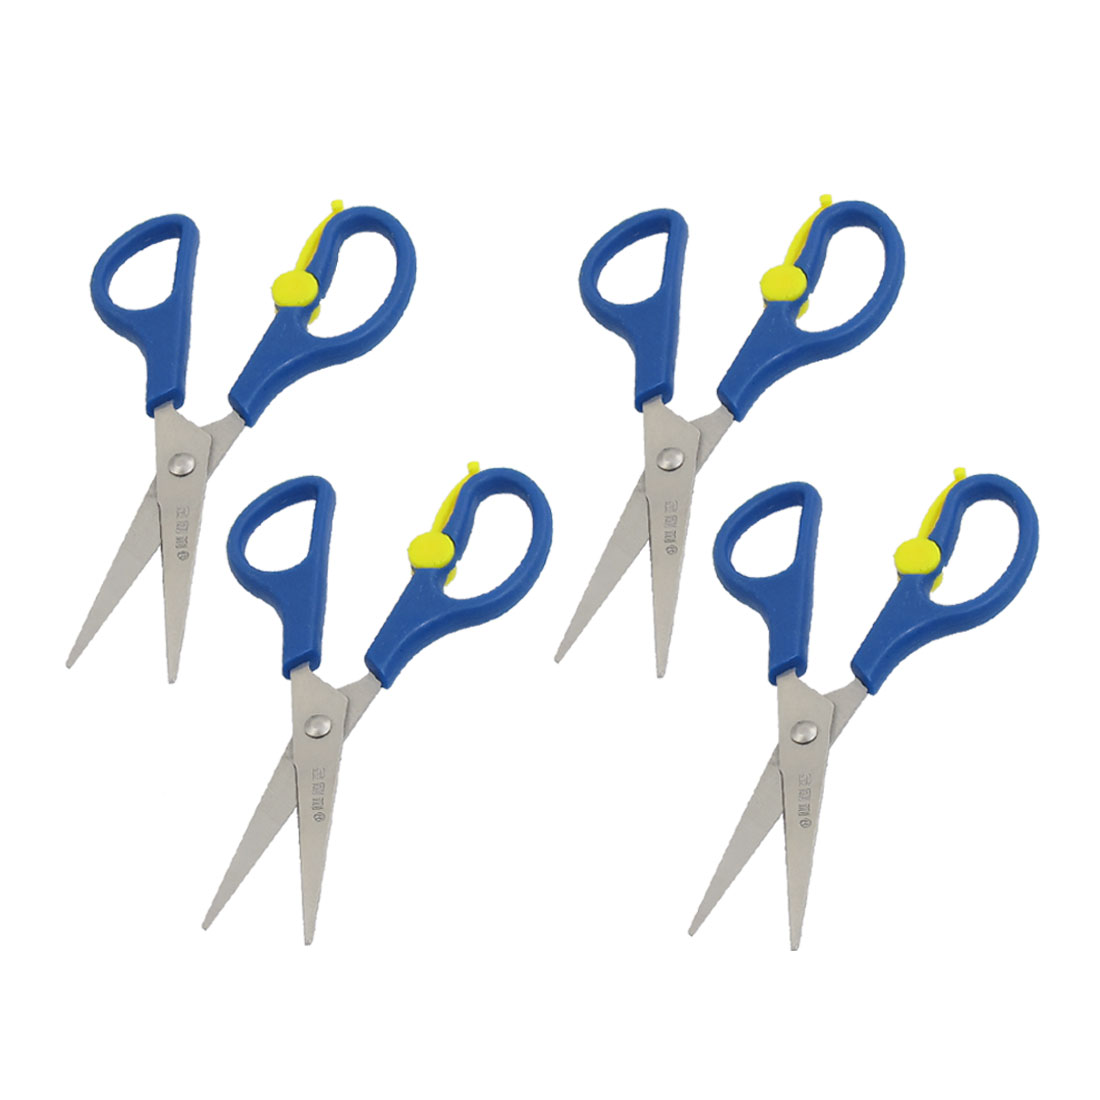 4 Pcs Office Stationery Blue Yellow Plastic Non-slip Handle Long Blade Scissors